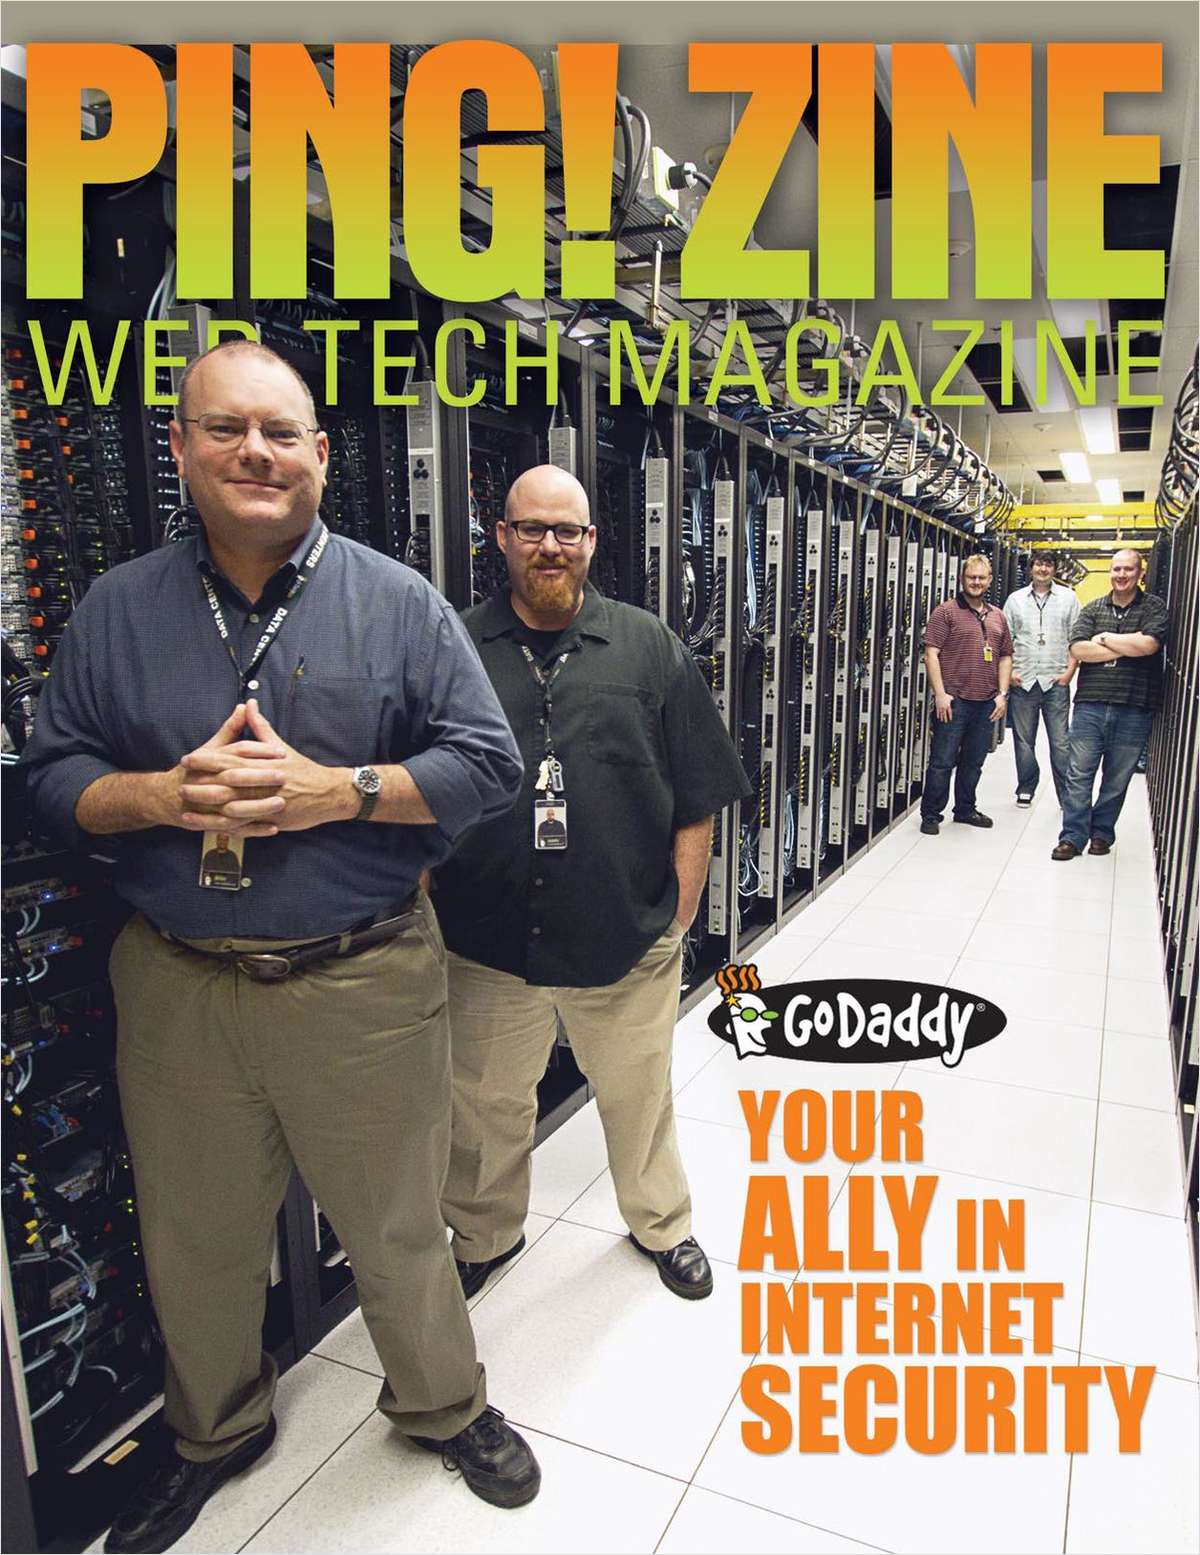 Ping! Zine -- Web Tech Magazine, Issue 72: Go Daddy, Your Ally In Internet Security